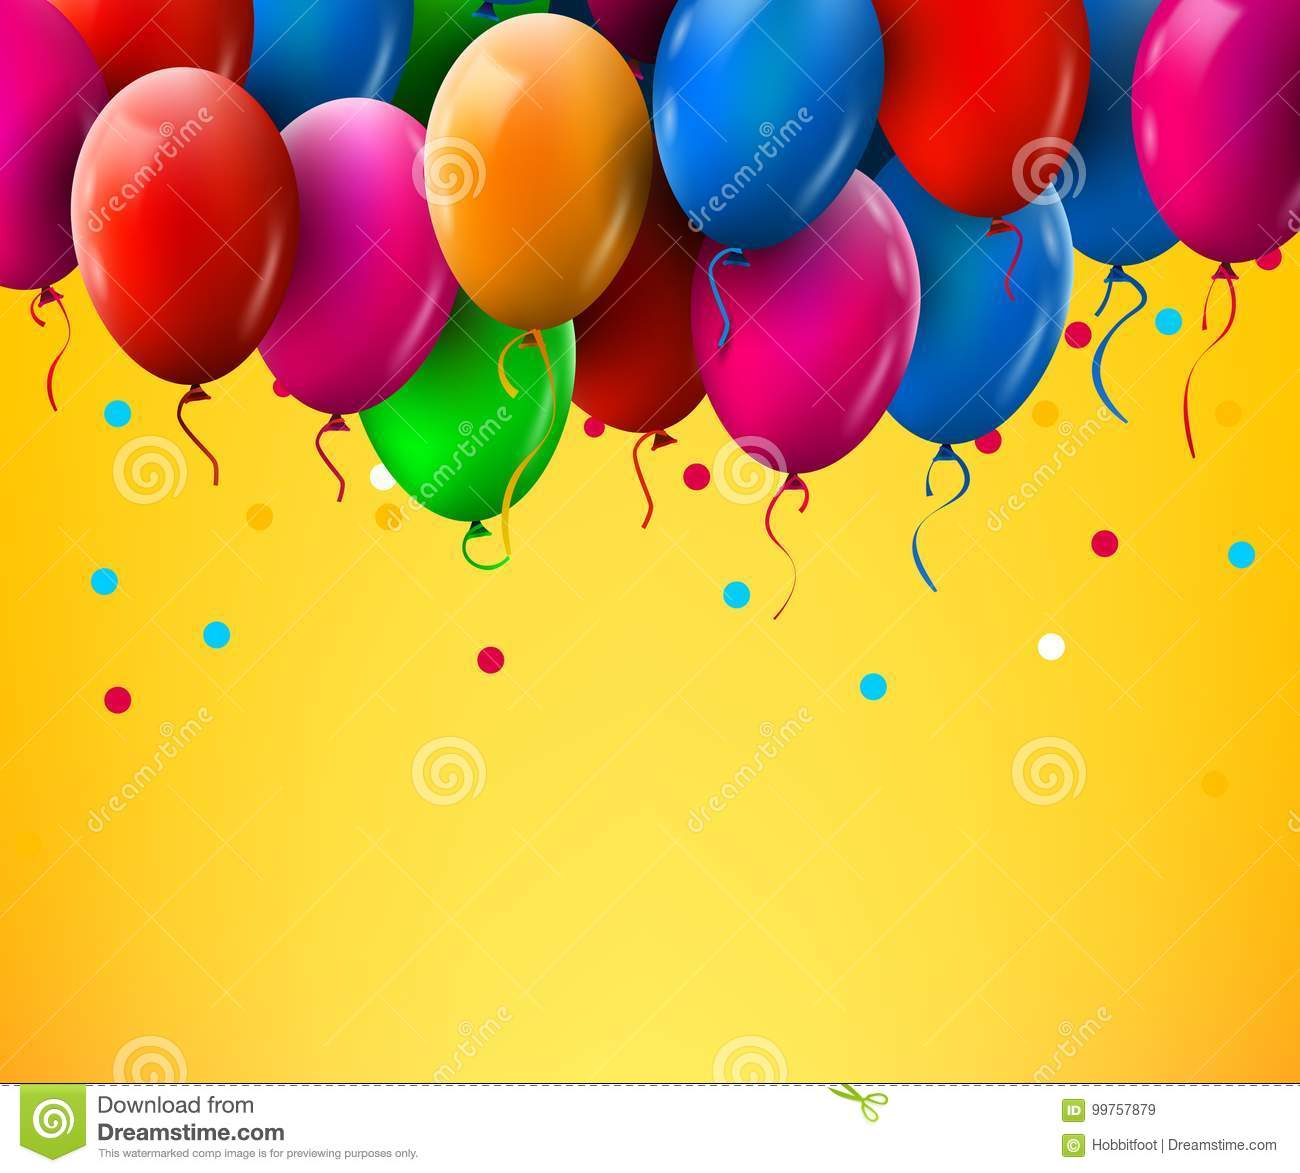 3d realistic colorful bunch of birthday balloons flying for party